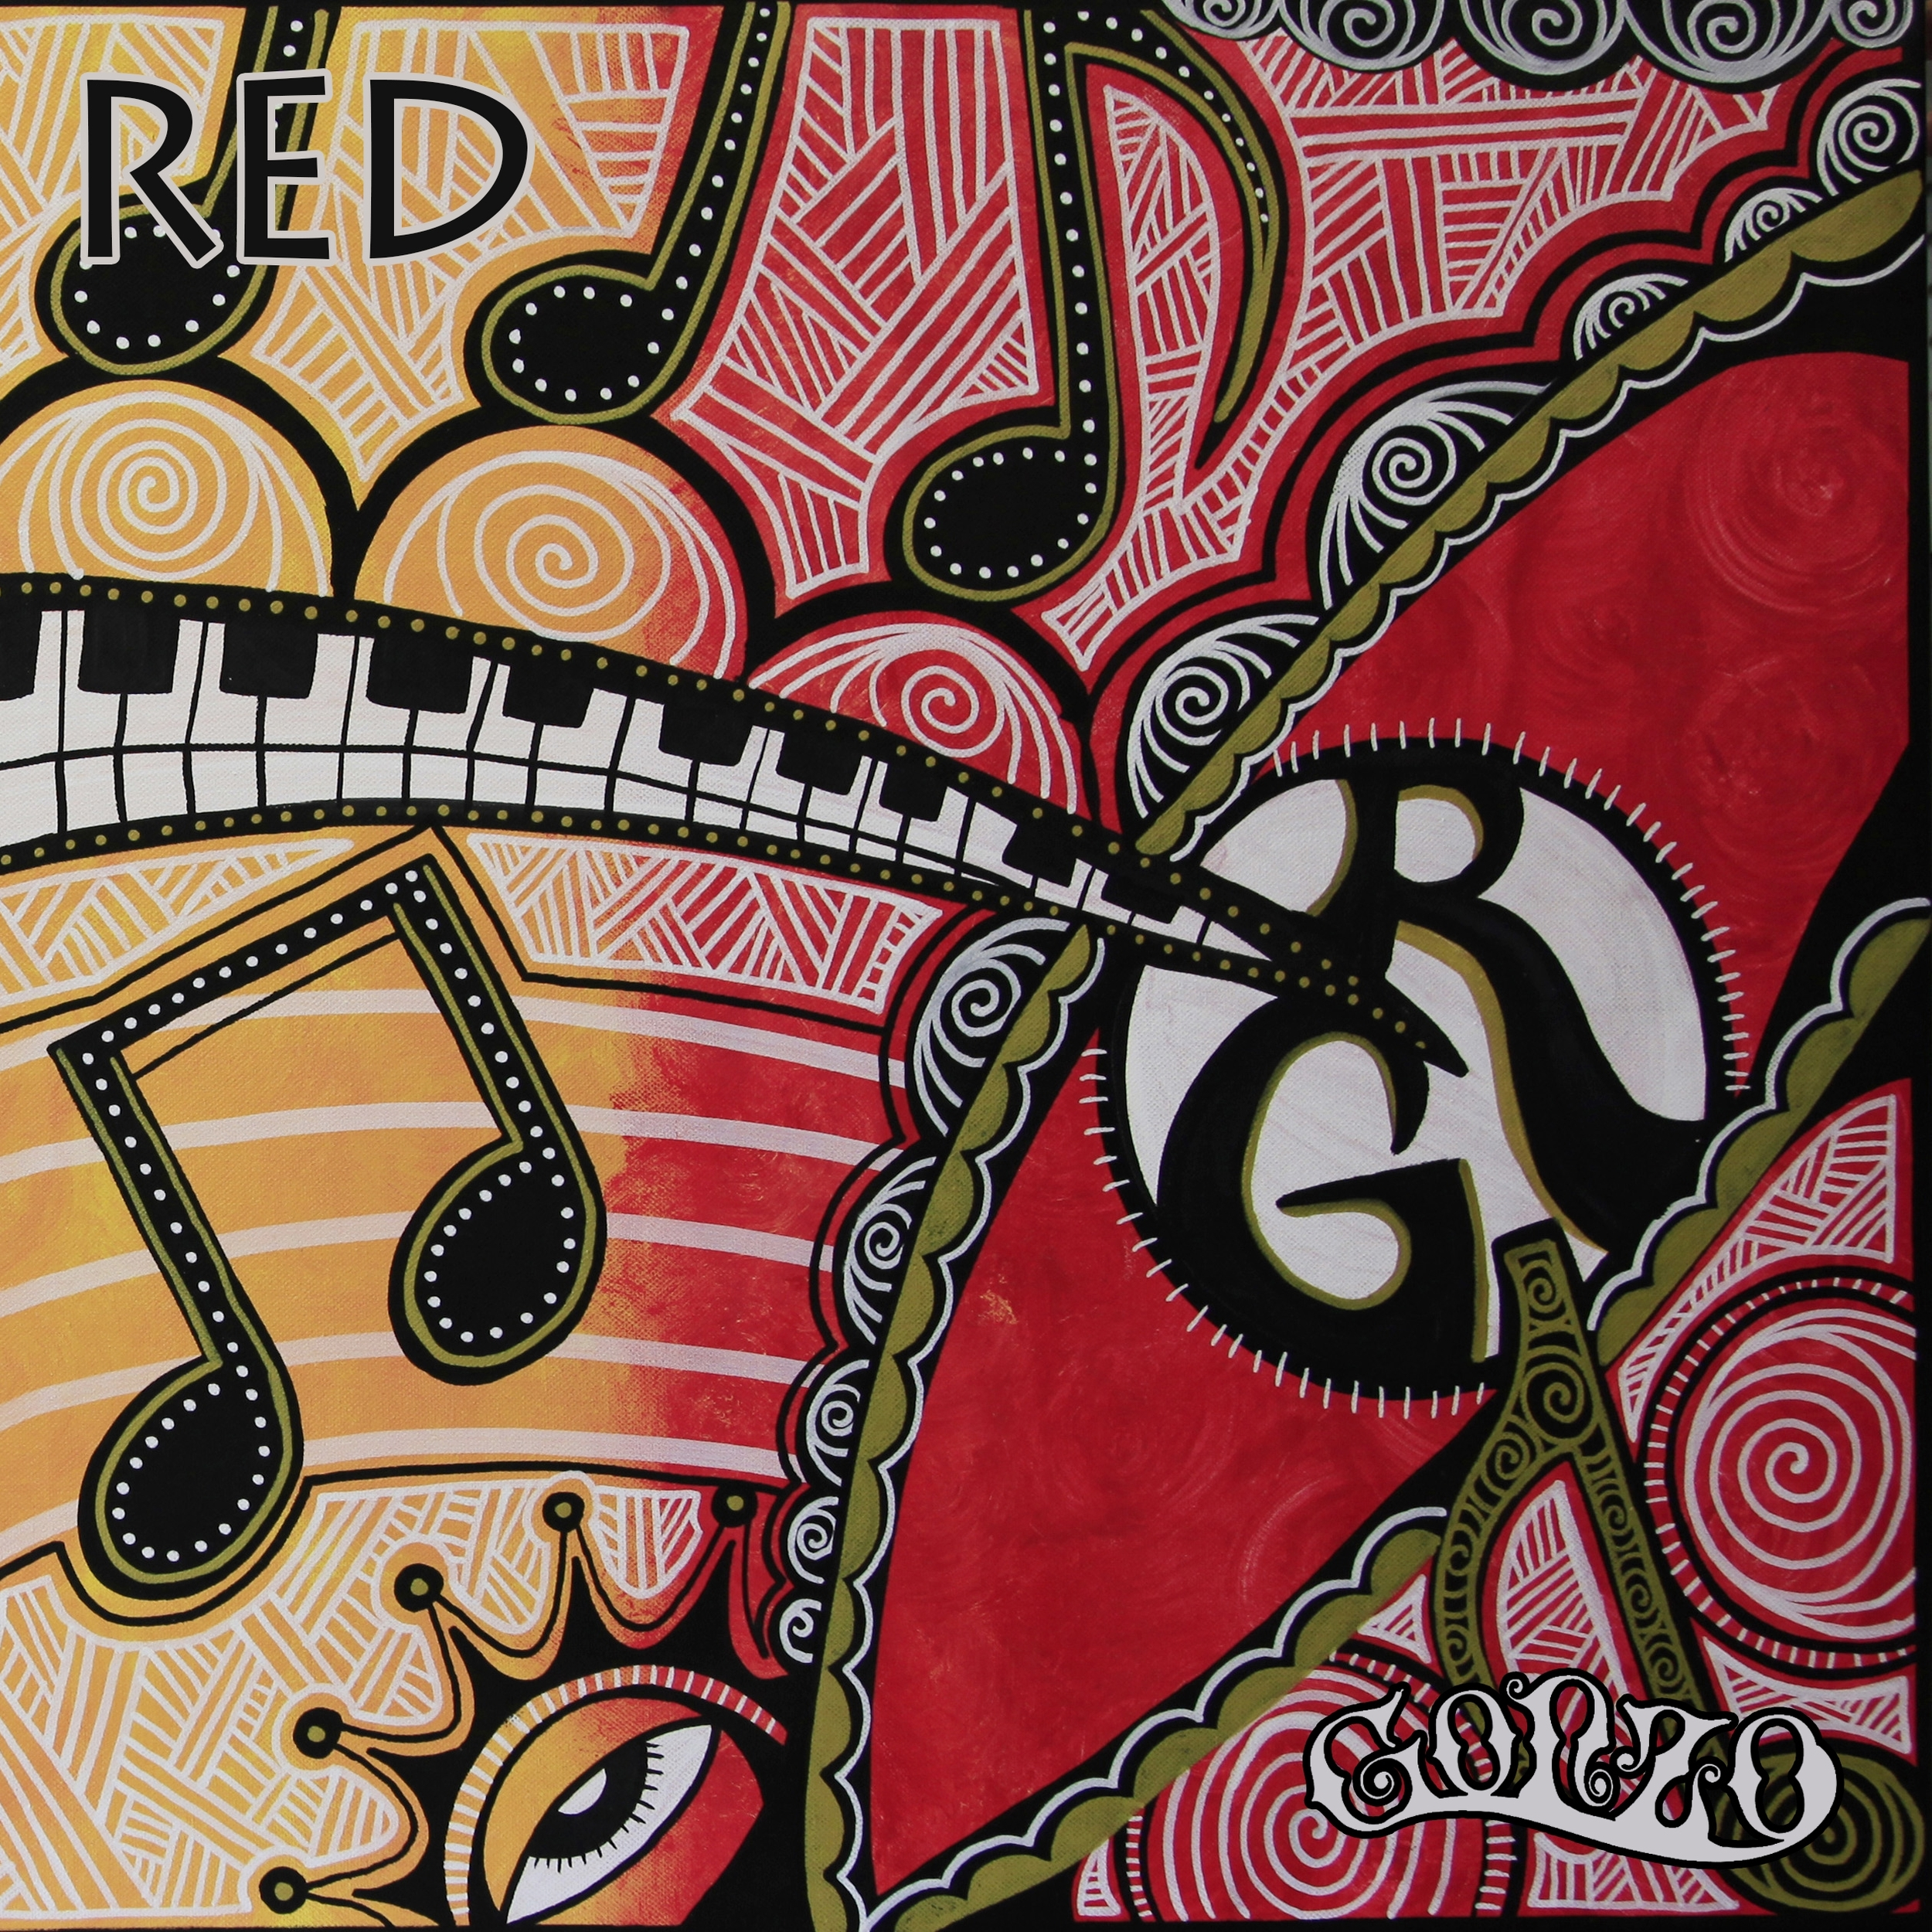 RED -  $8.91